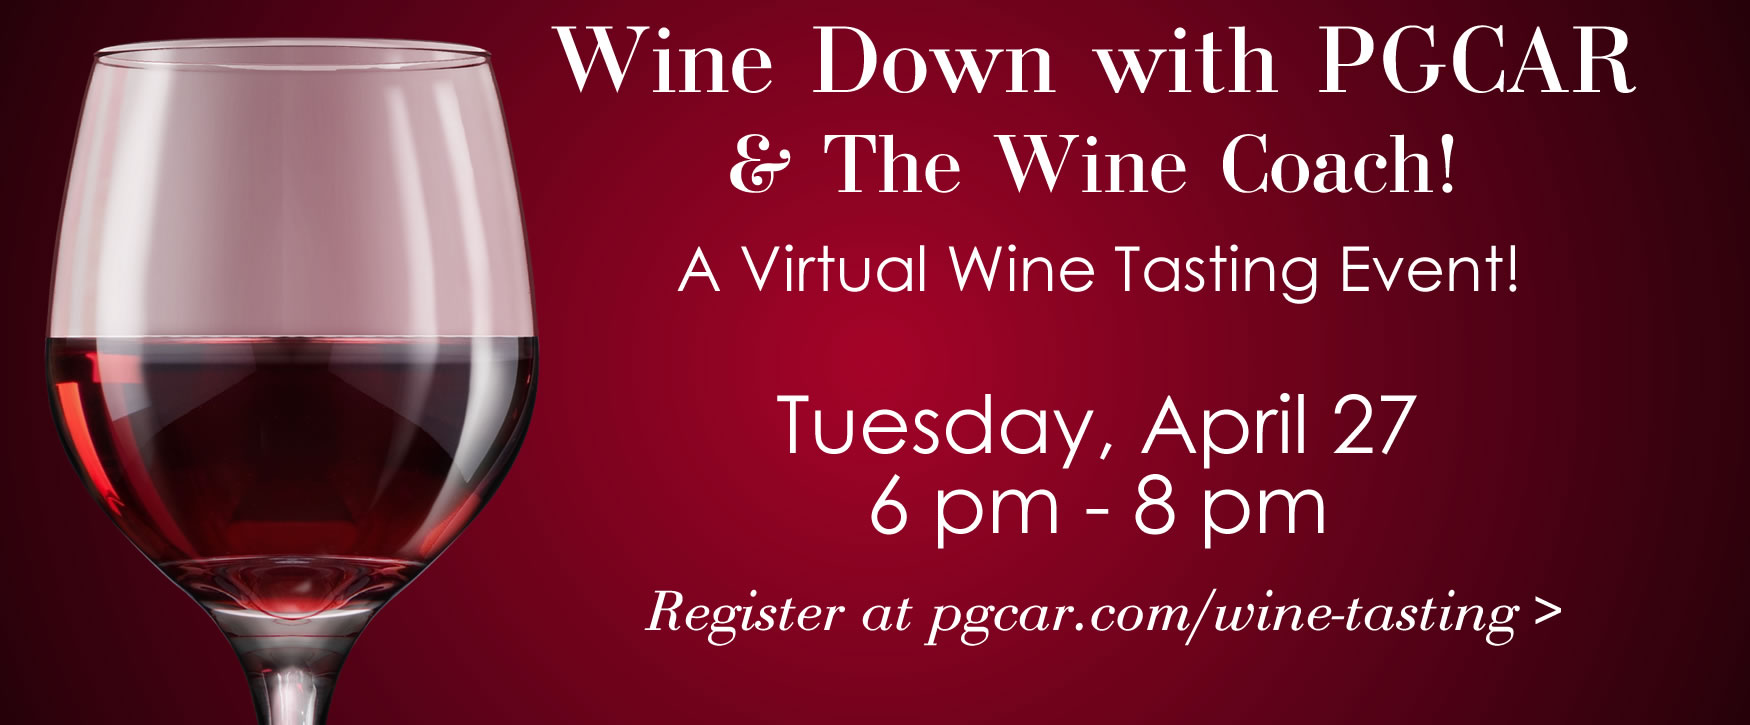 Wine Down with PGCAR - Register by April 23